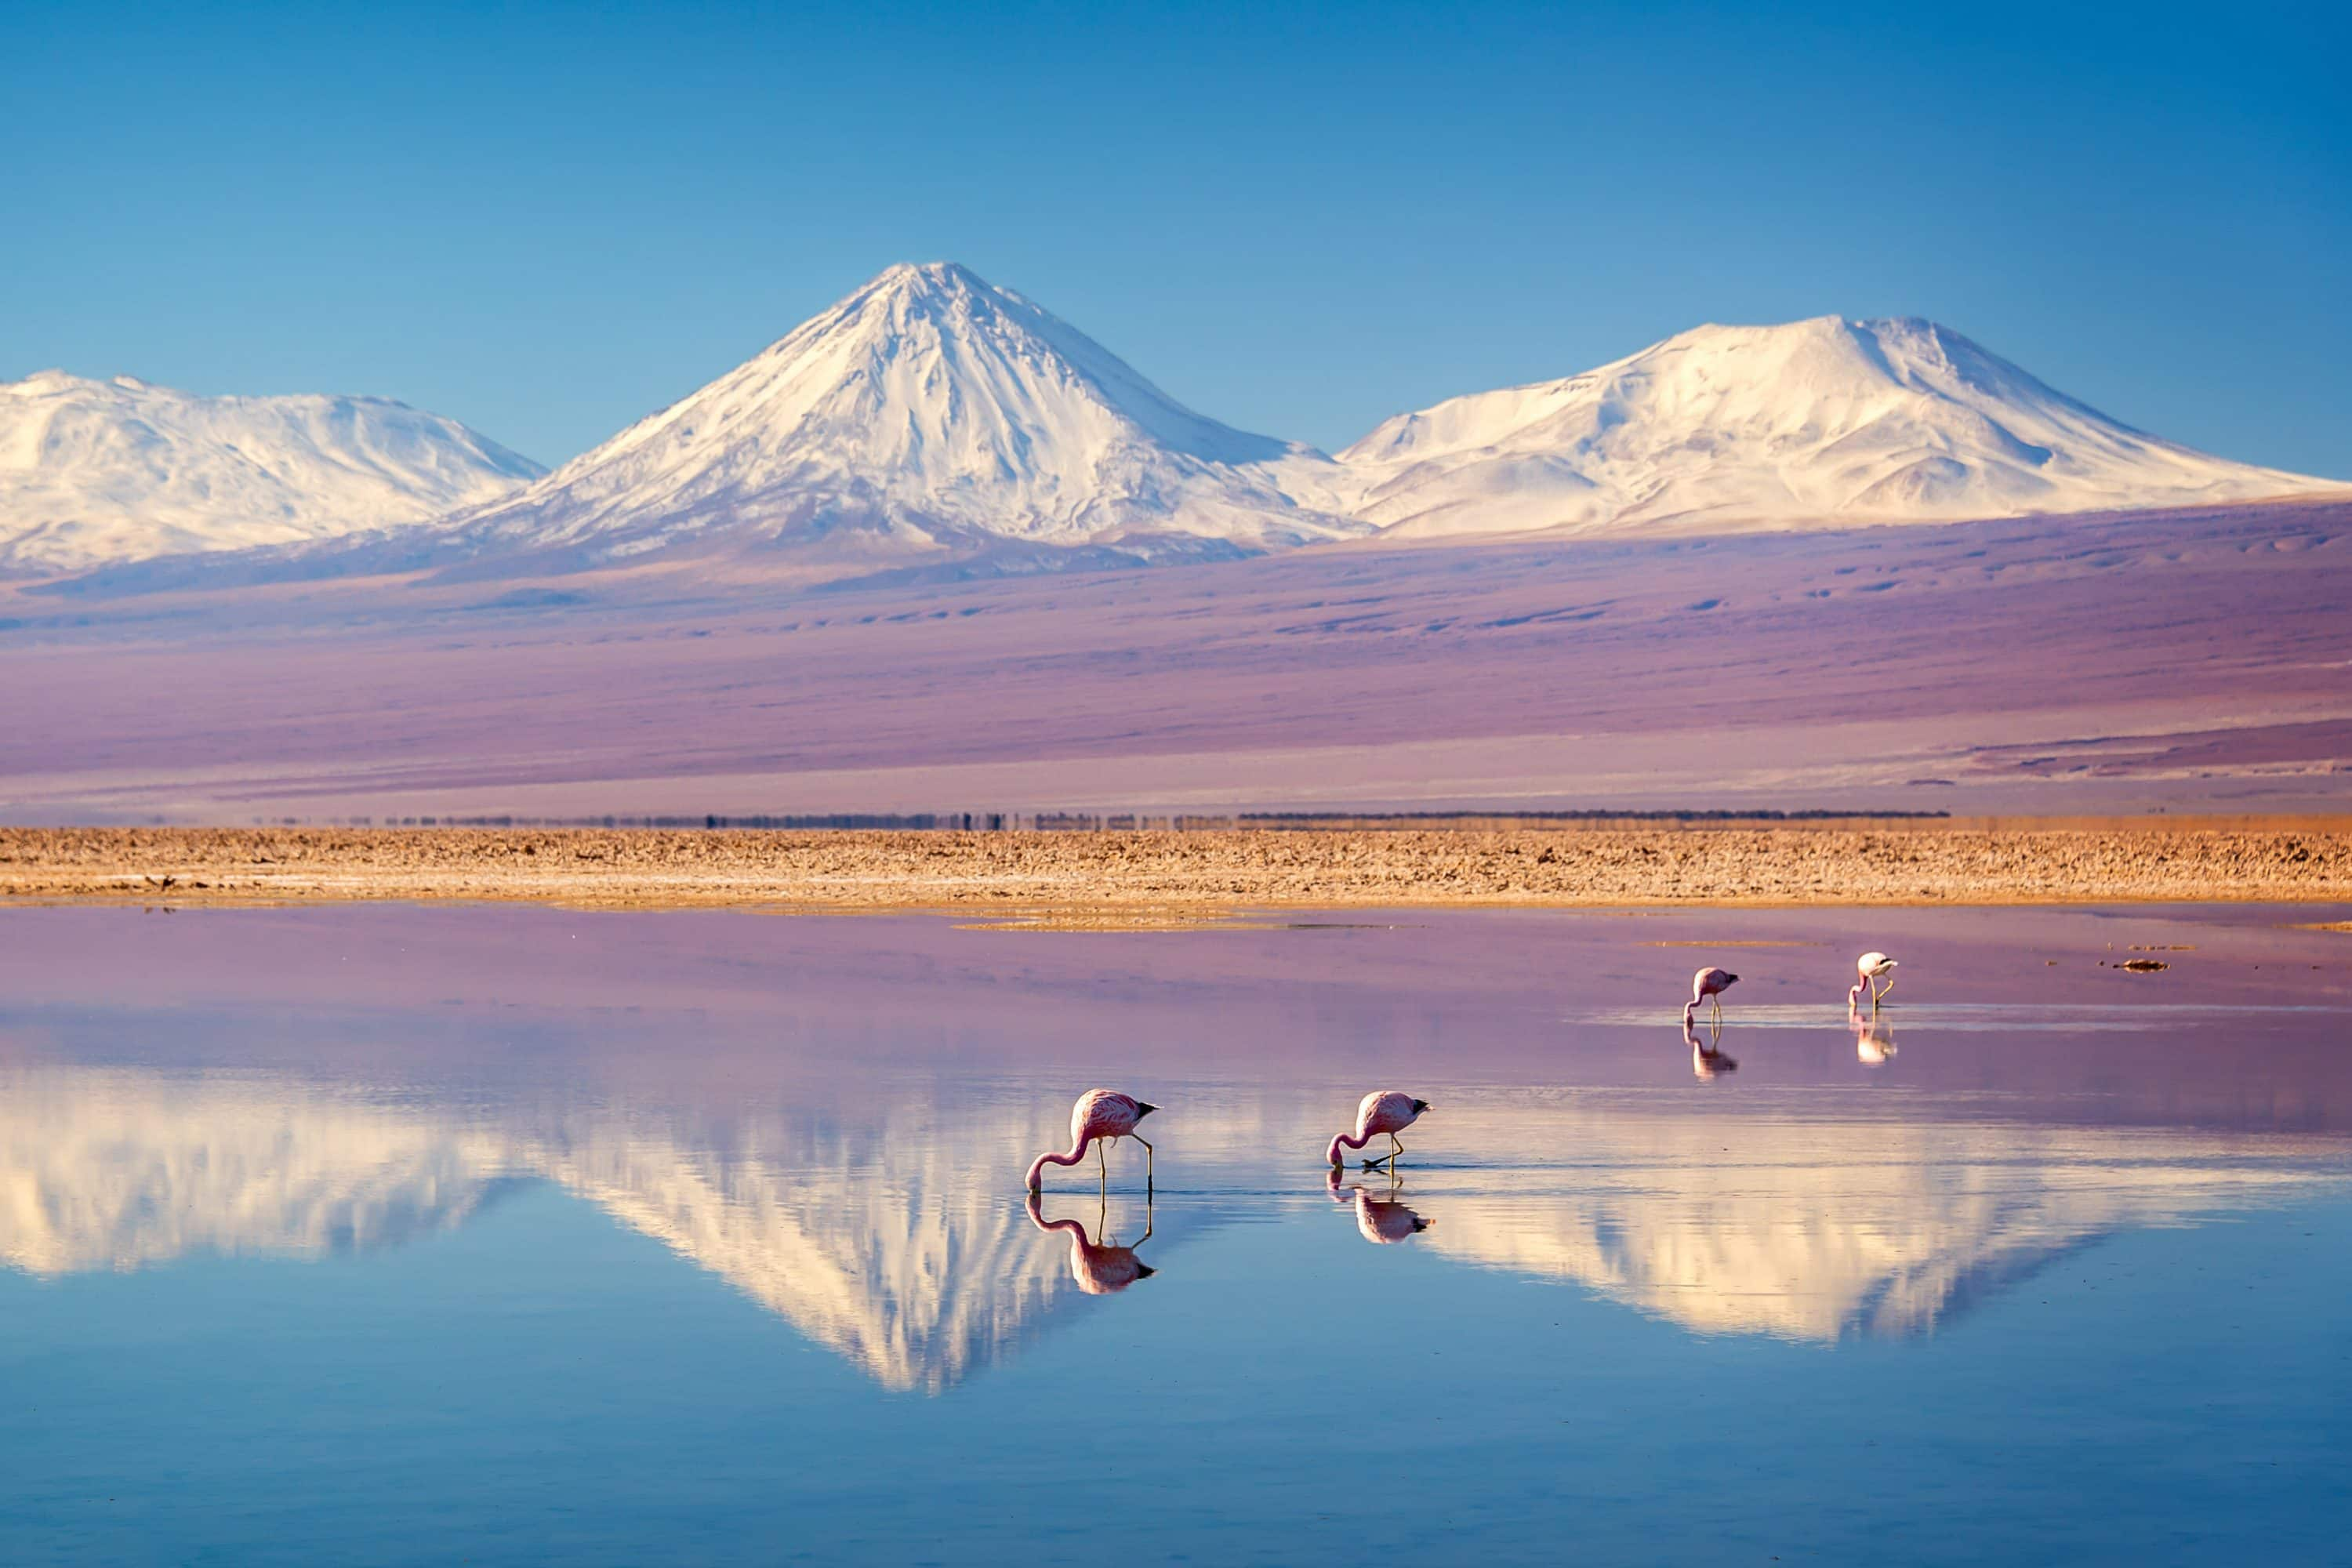 Snow-capped mountains reflected on the lake with flamingos in the Atacama desert